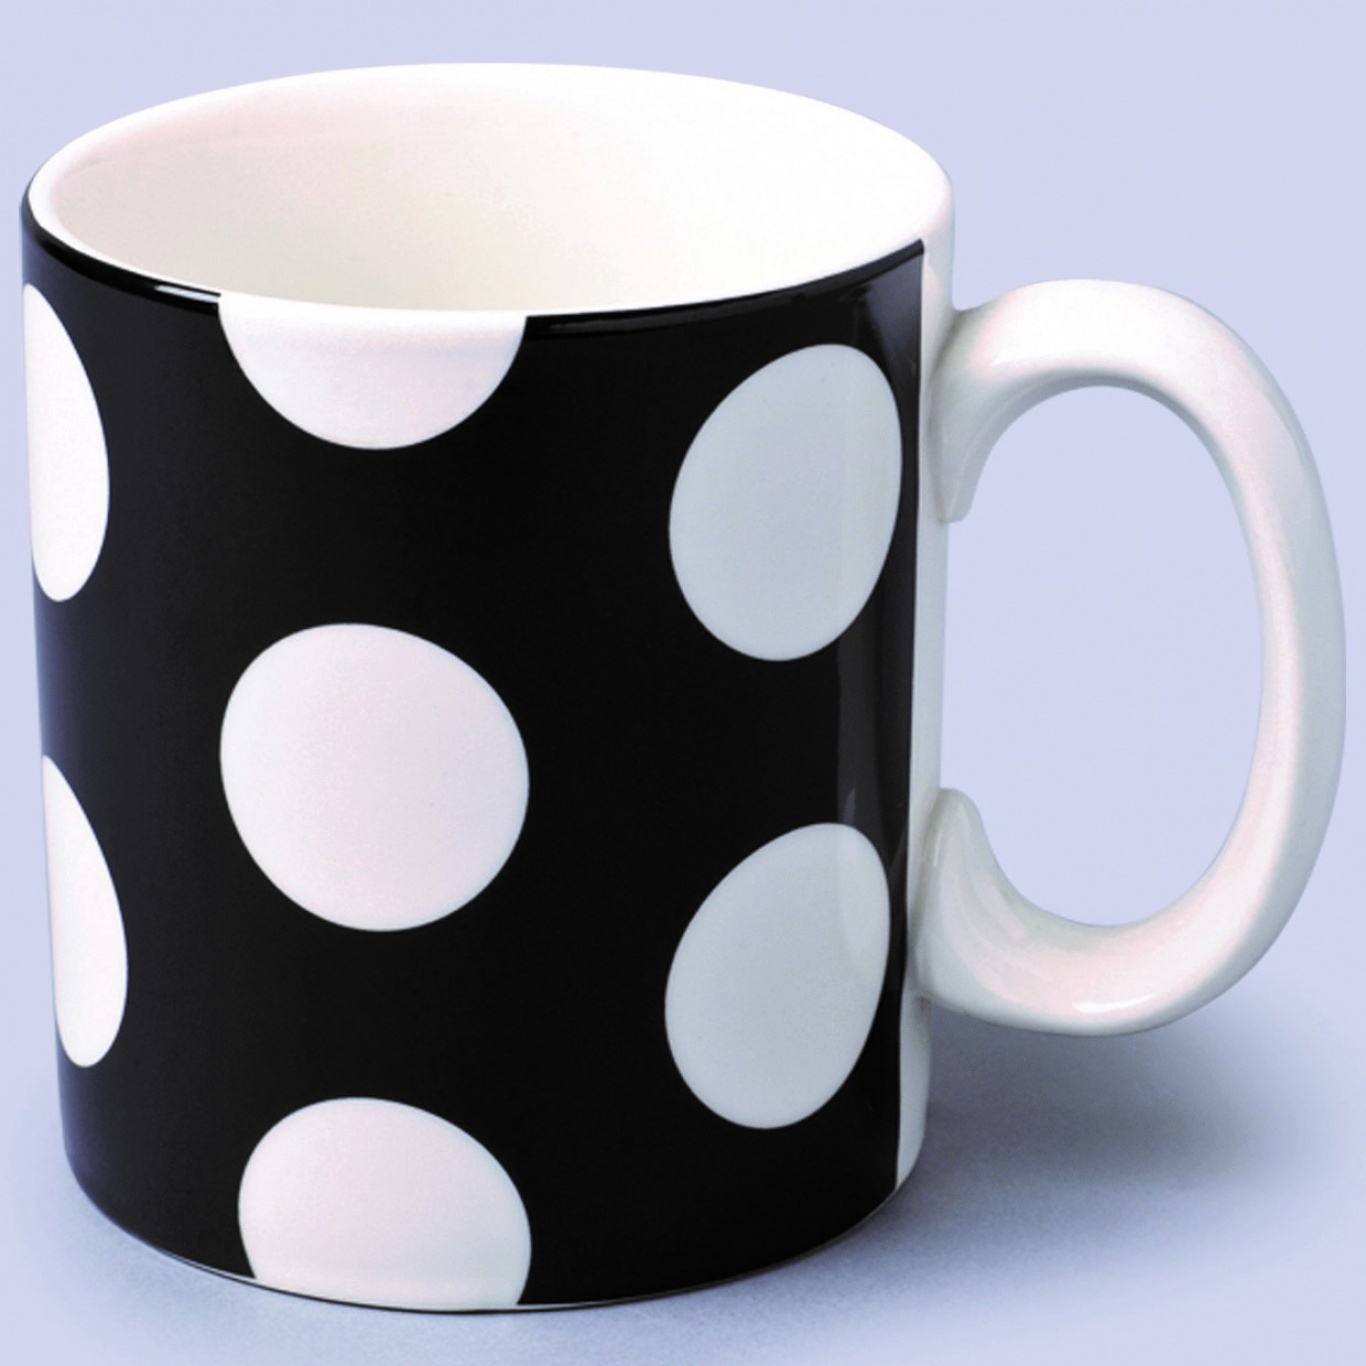 Image of 1 Pint Extra Large Mug Black Spot